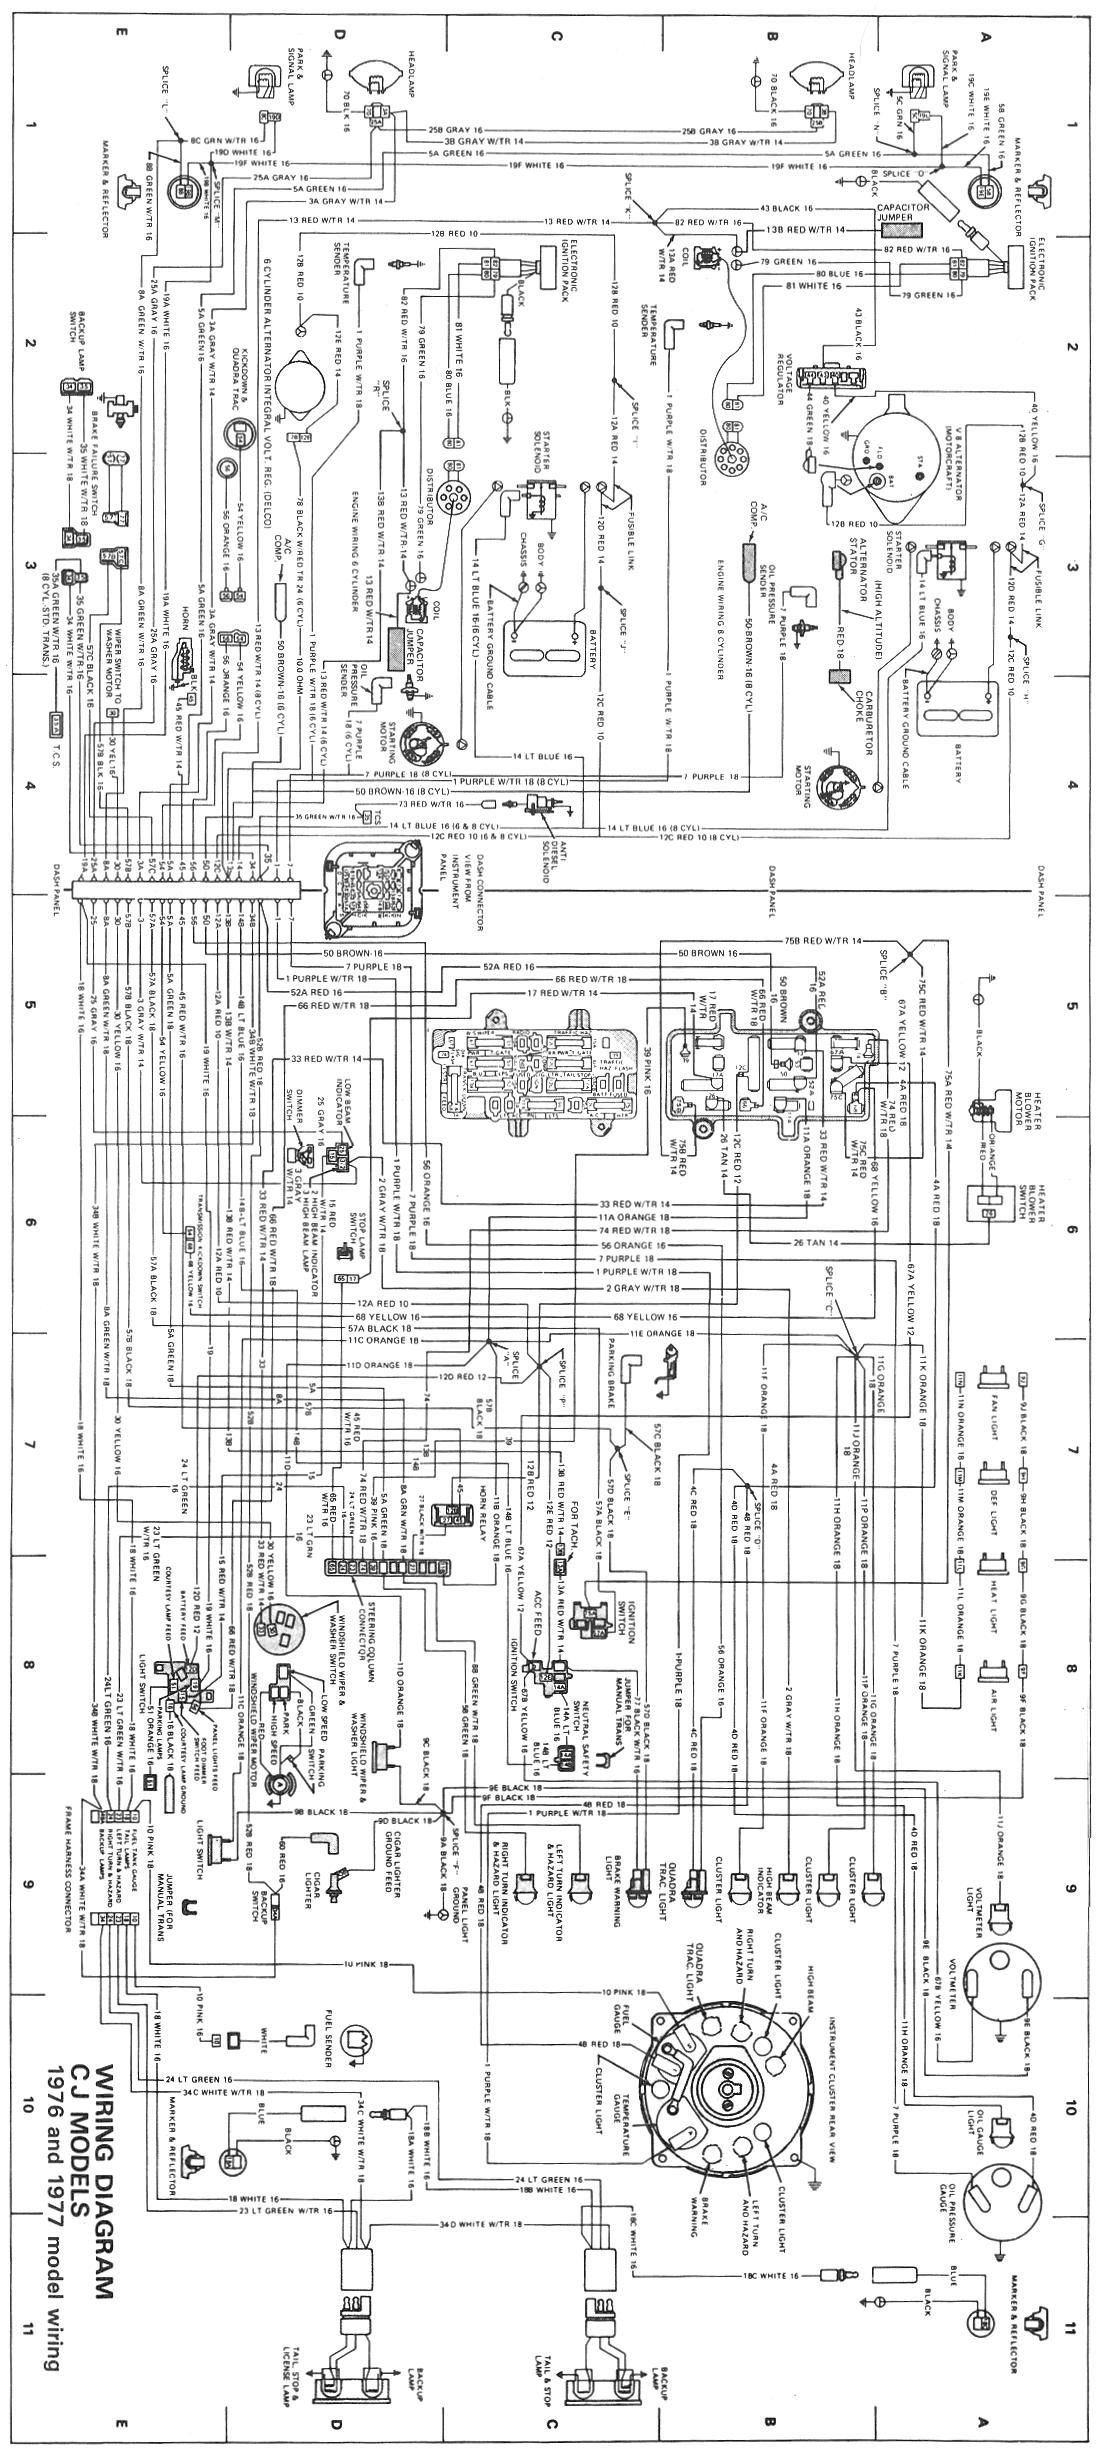 V8 Jeep Cj5 Wiring Harness Circuit Diagram Schema Geo Tracker Headlight List Of Schematic U2022